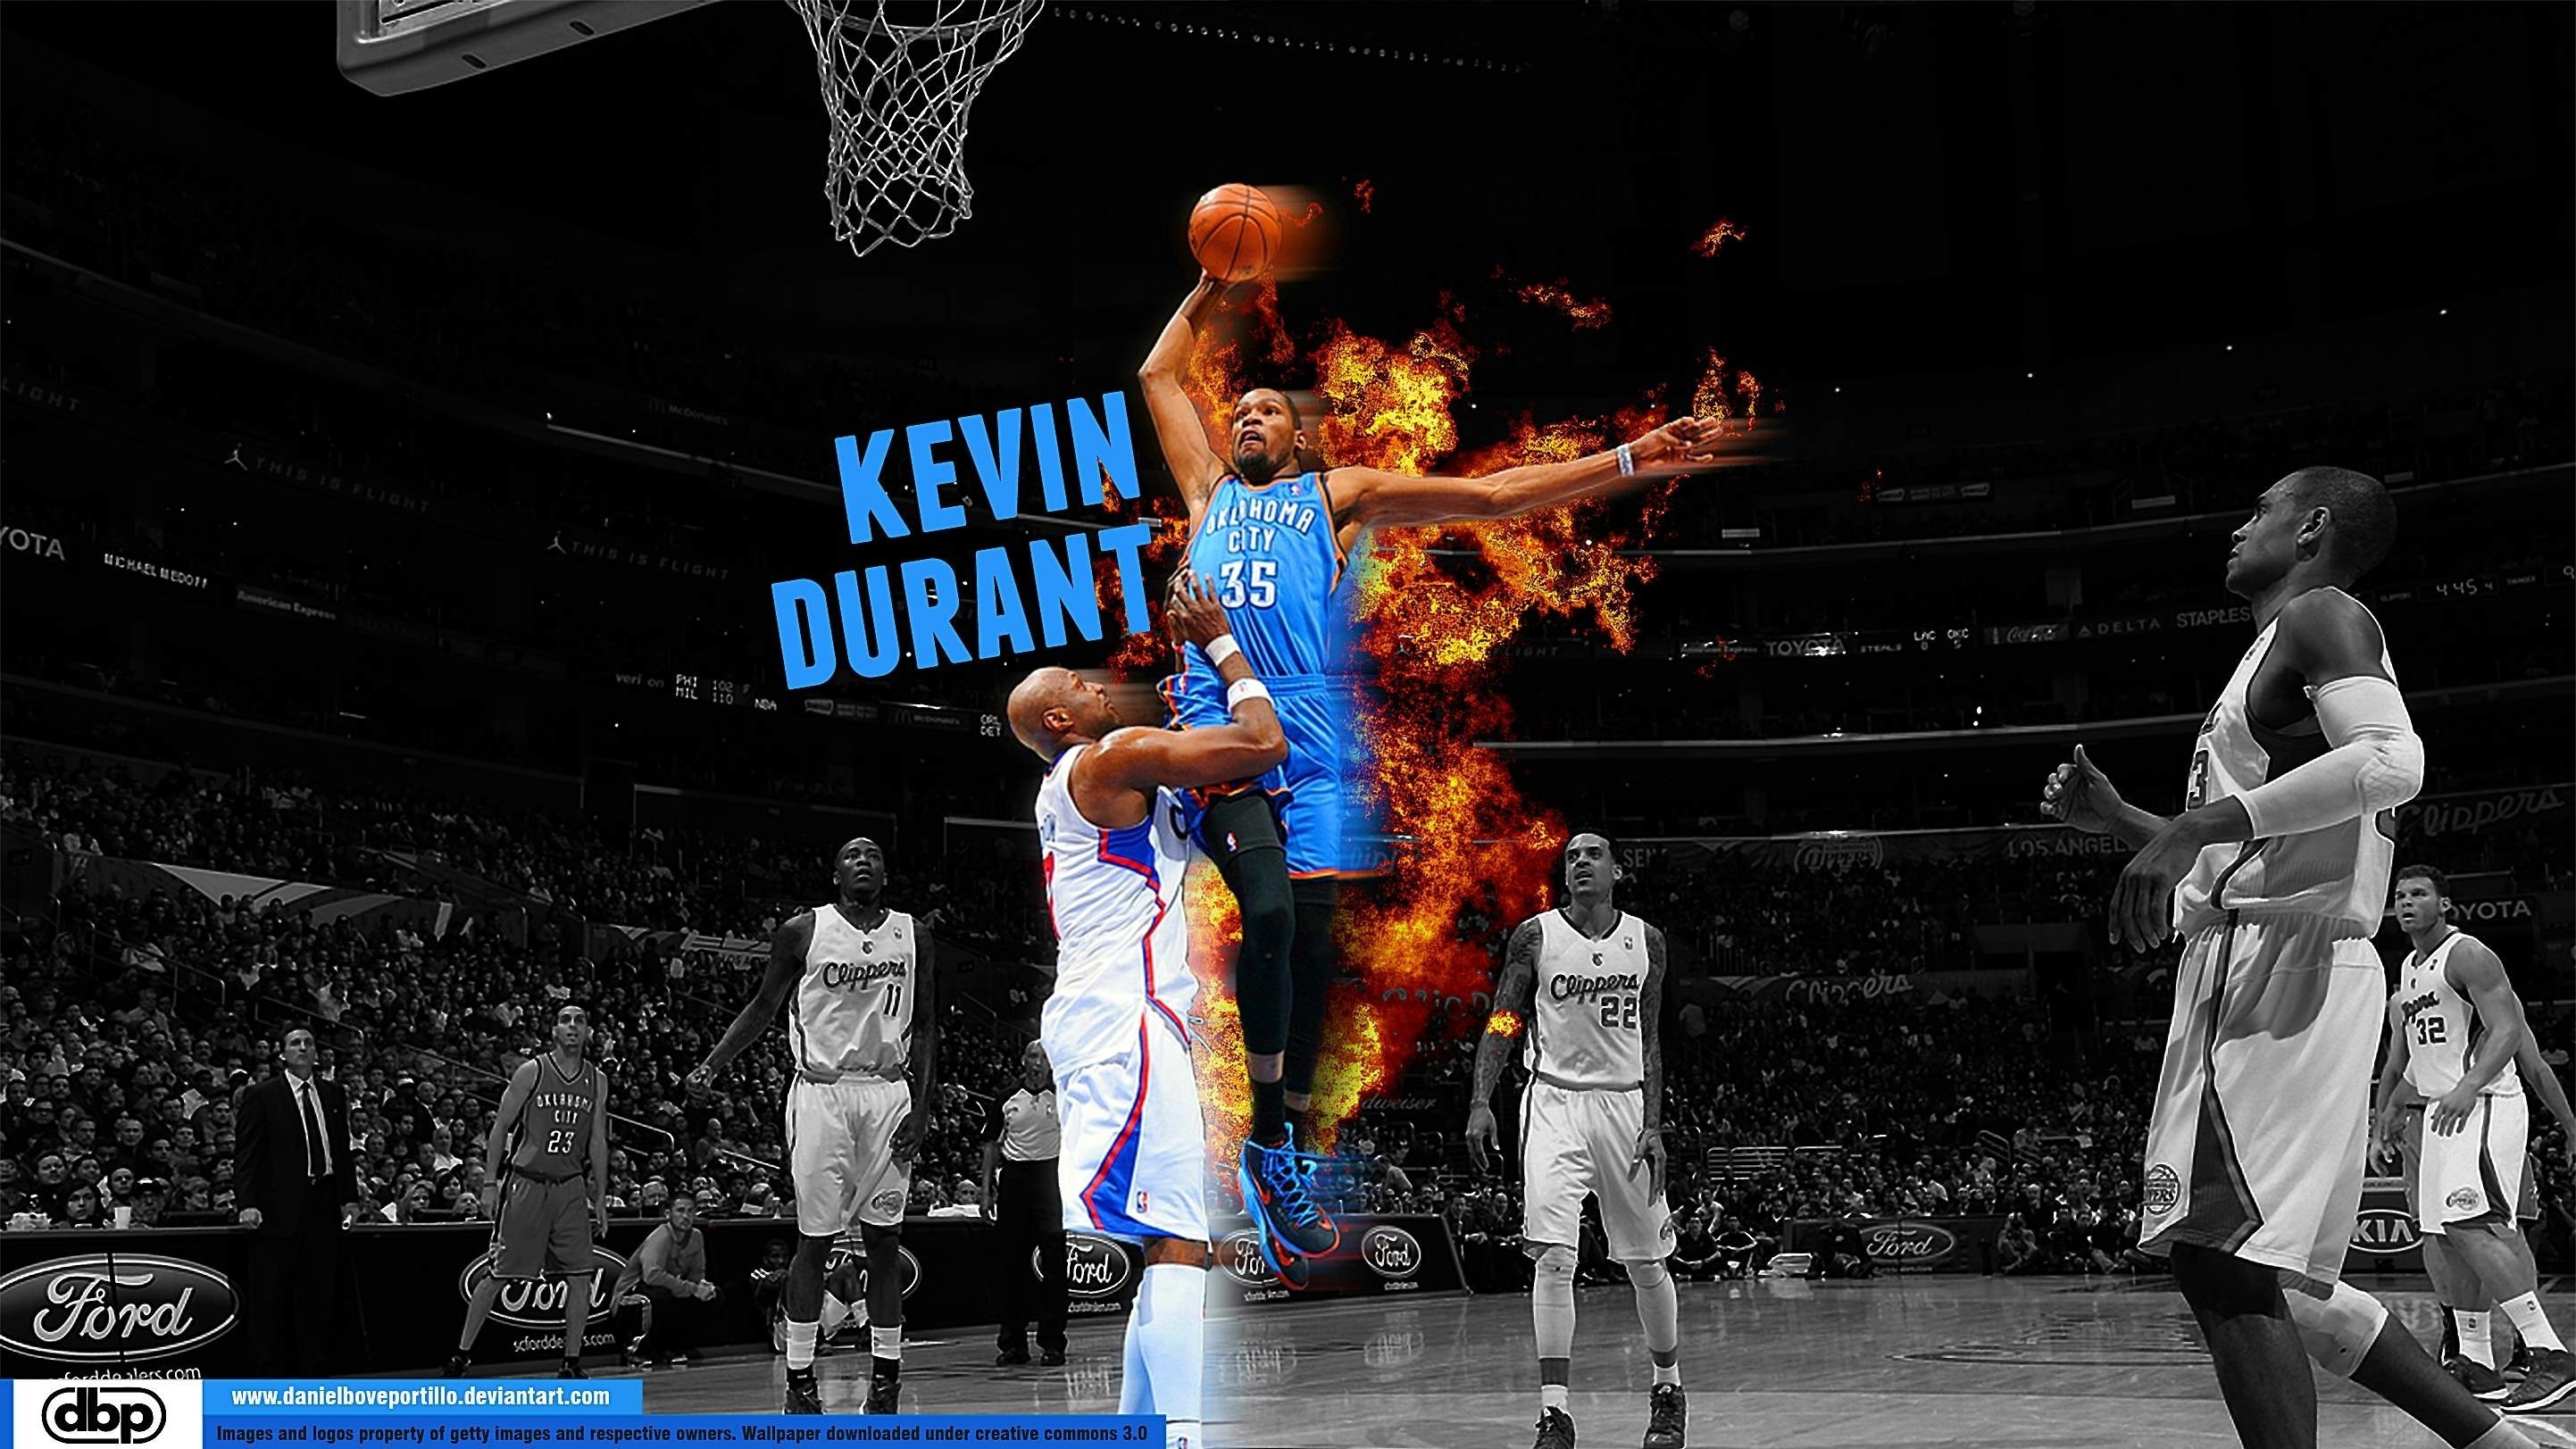 2885x1623 2885x1623 2885x1623 Kevin Durant Wallpapers HD Wallpaper · Download · 2560x1600 .